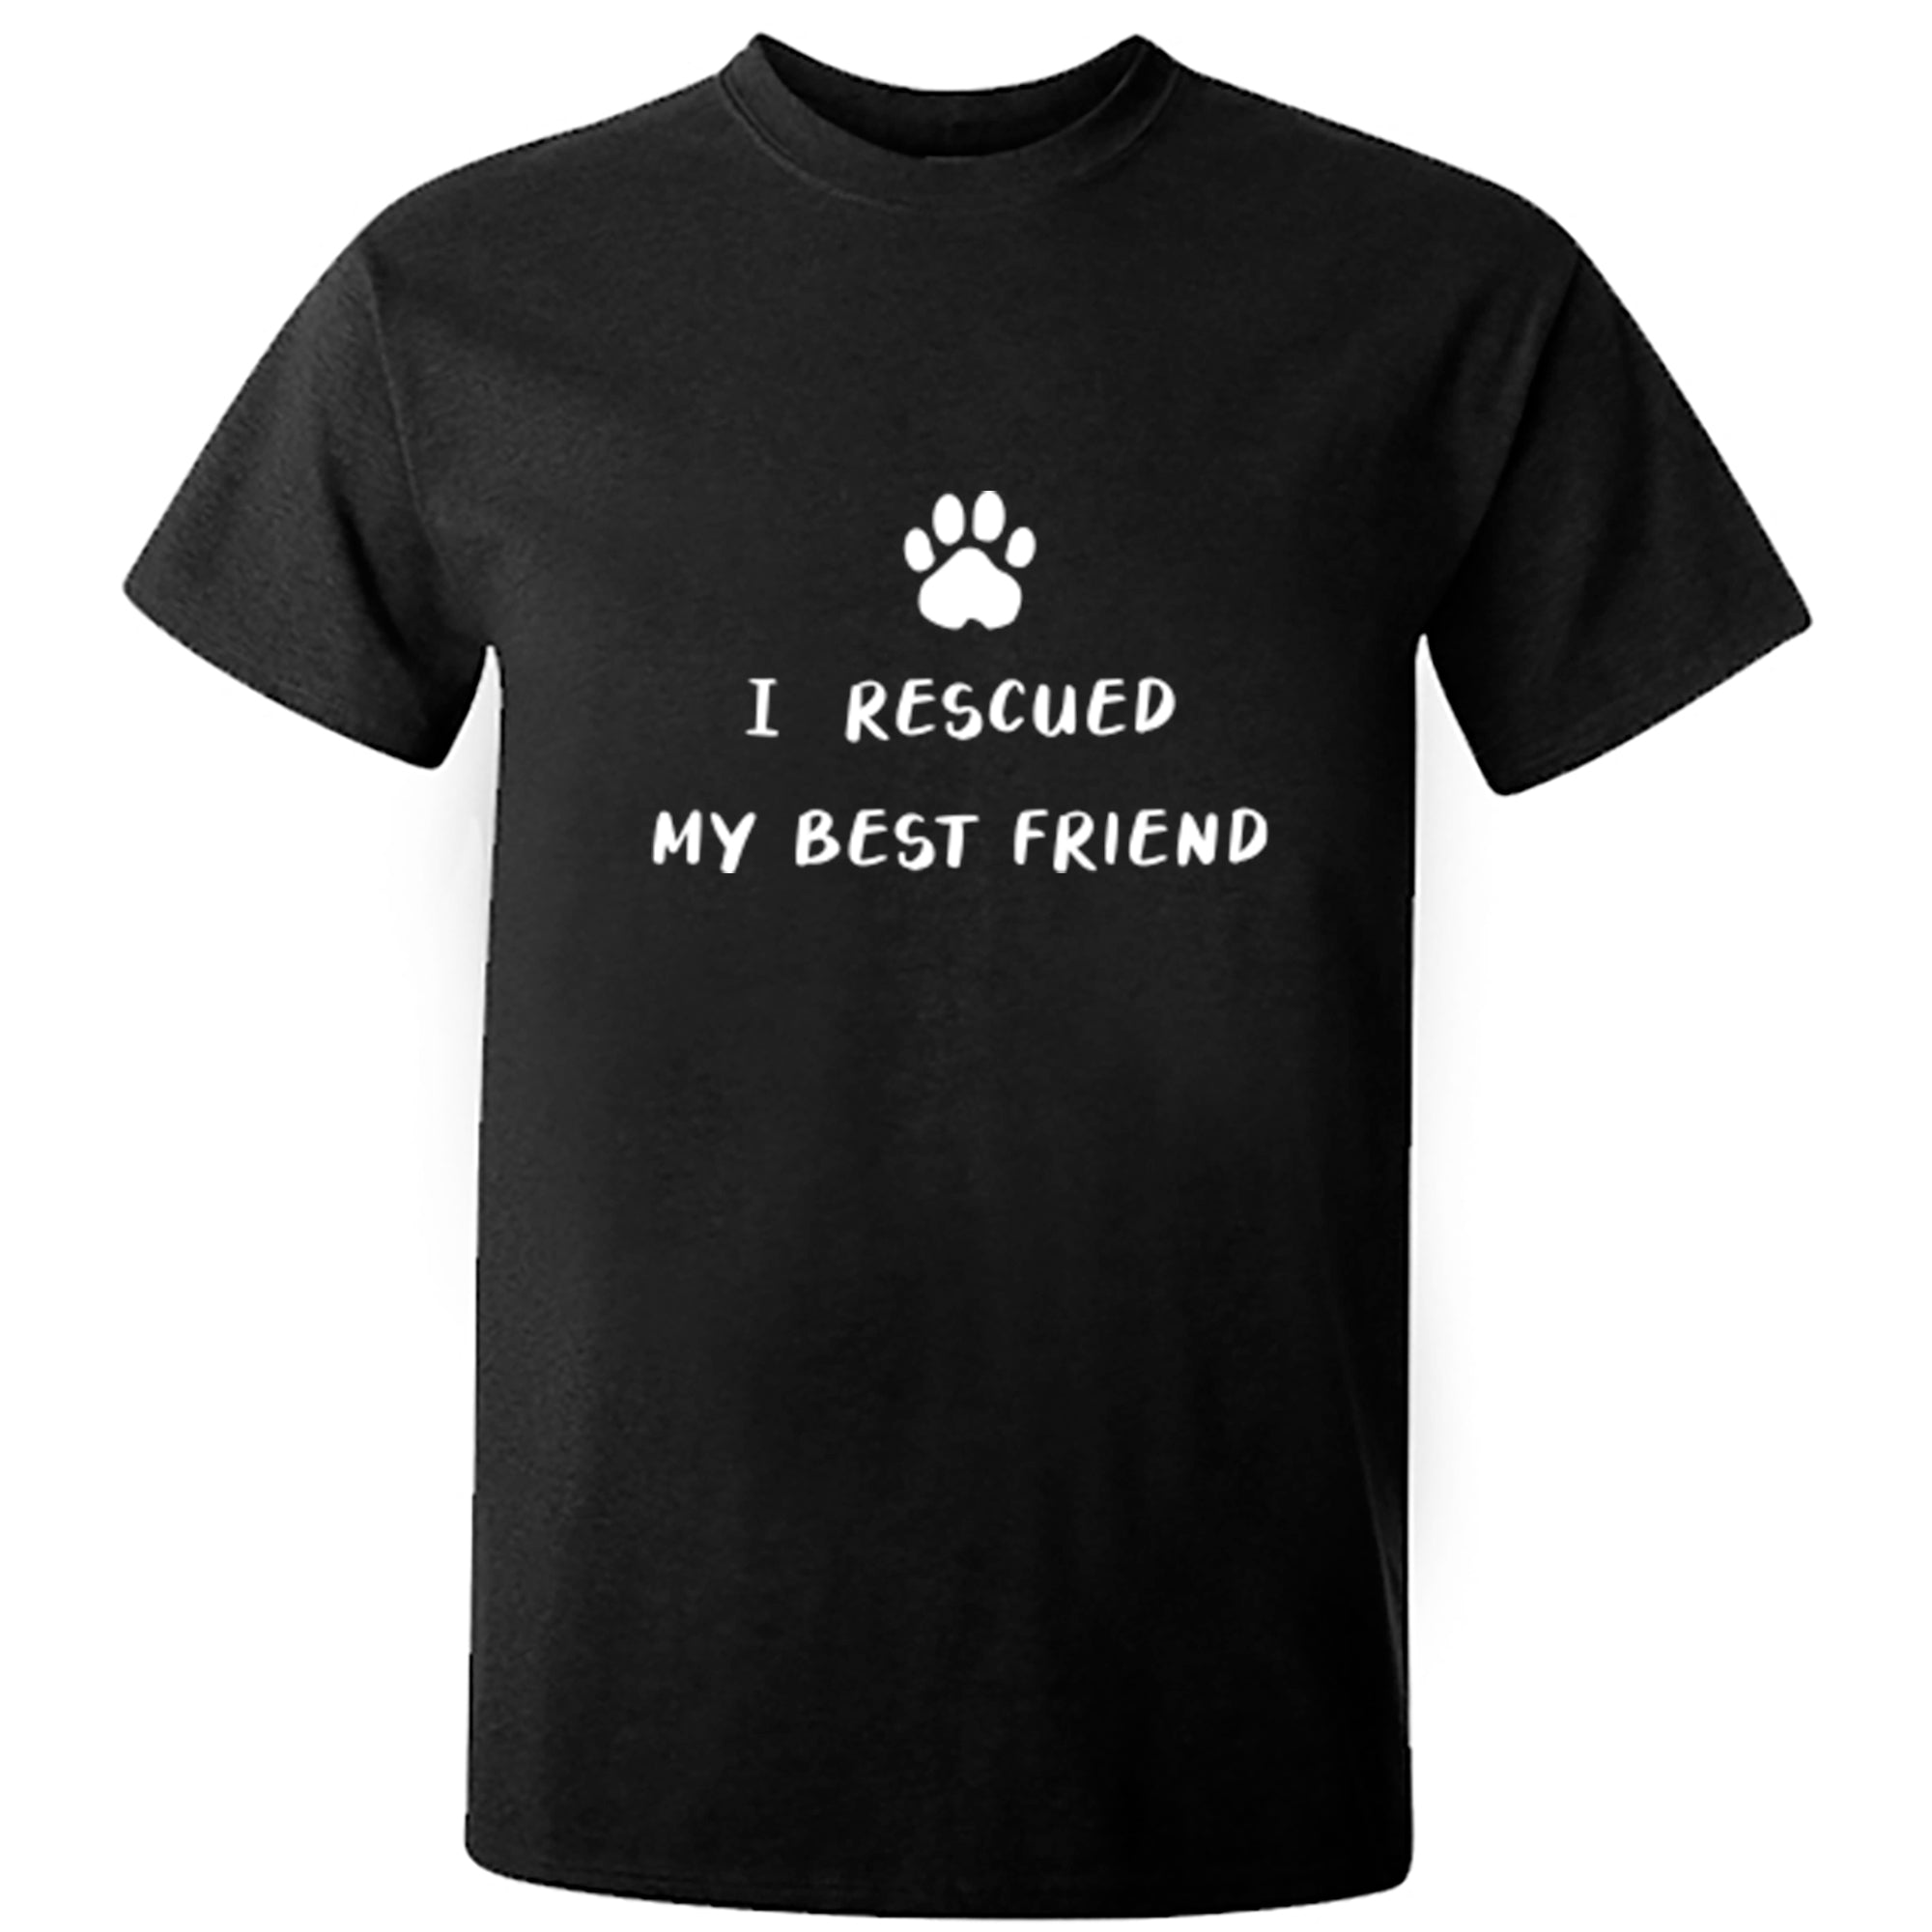 I Rescued My Best Friend Unisex Fit T-Shirt A0073